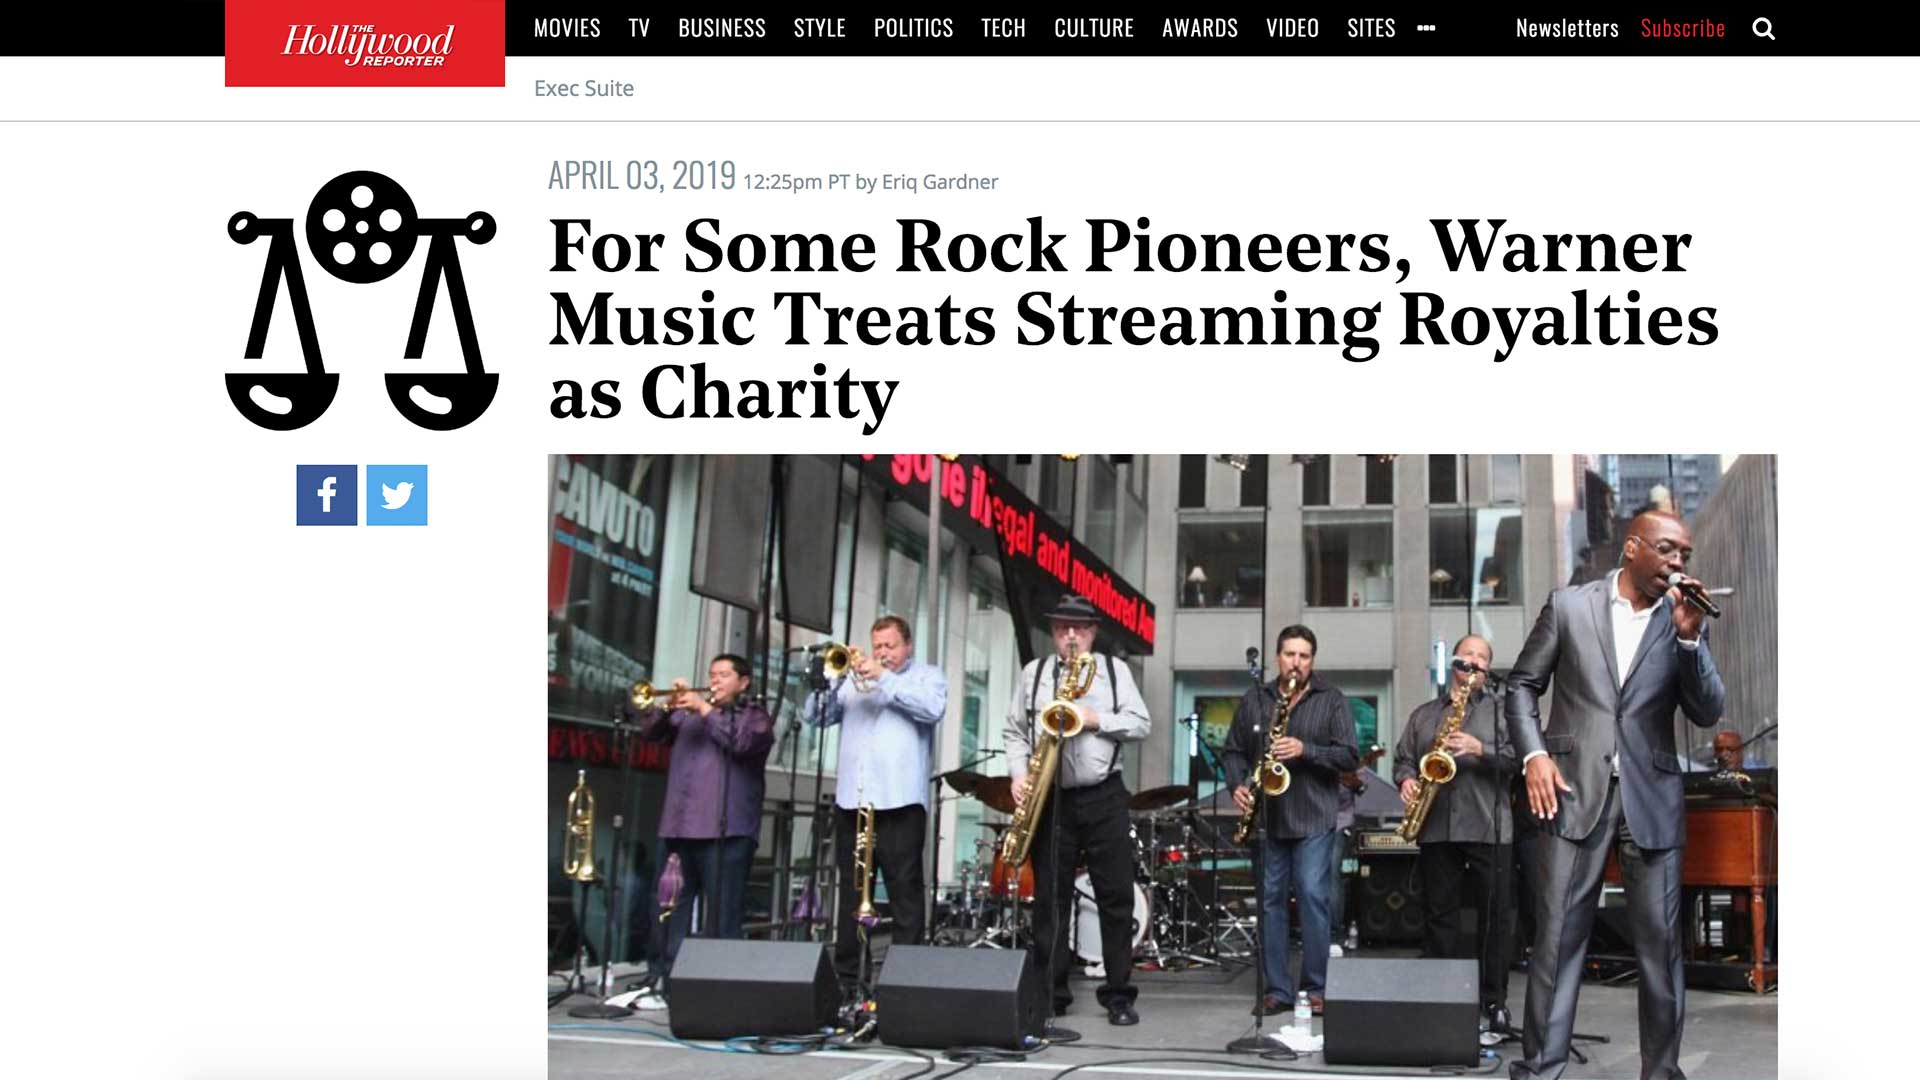 Fairness Rocks News For Some Rock Pioneers, Warner Music Treats Streaming Royalties as Charity